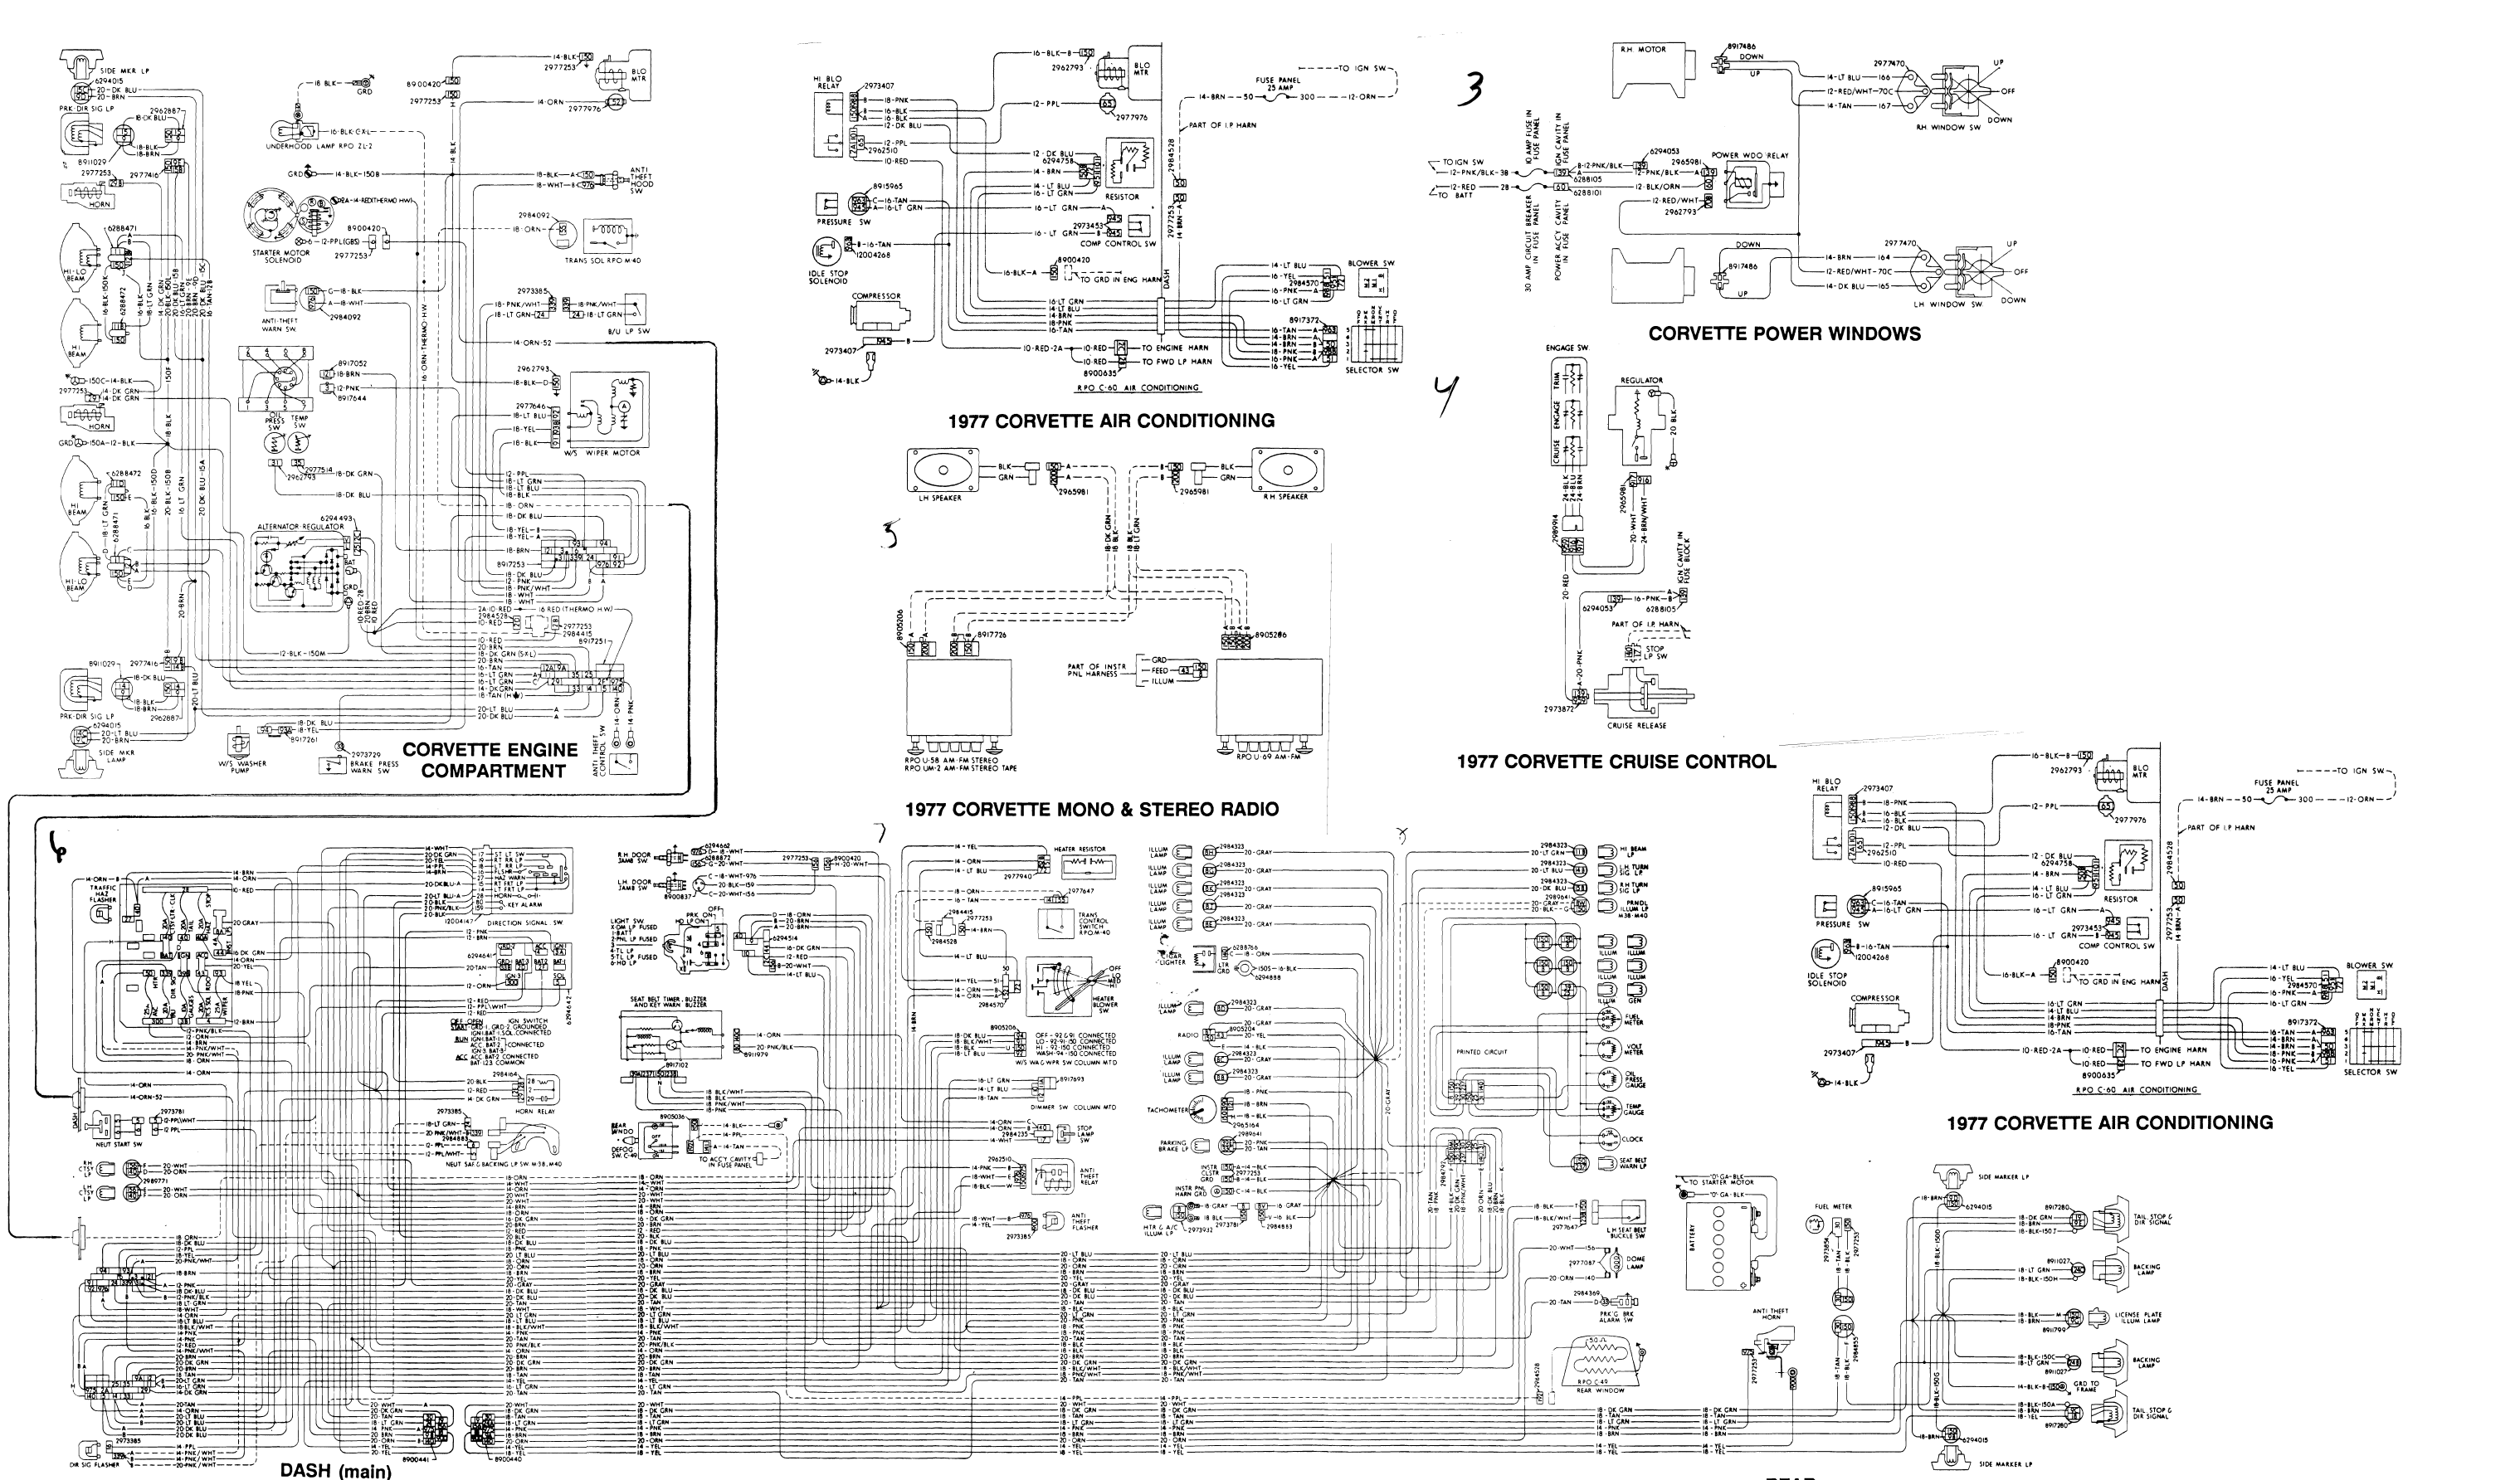 1974 corvette tracer wiring diagram tracer schematic willcox rh repairs willcoxcorvette com automotive wiring diagram website wire diagram website